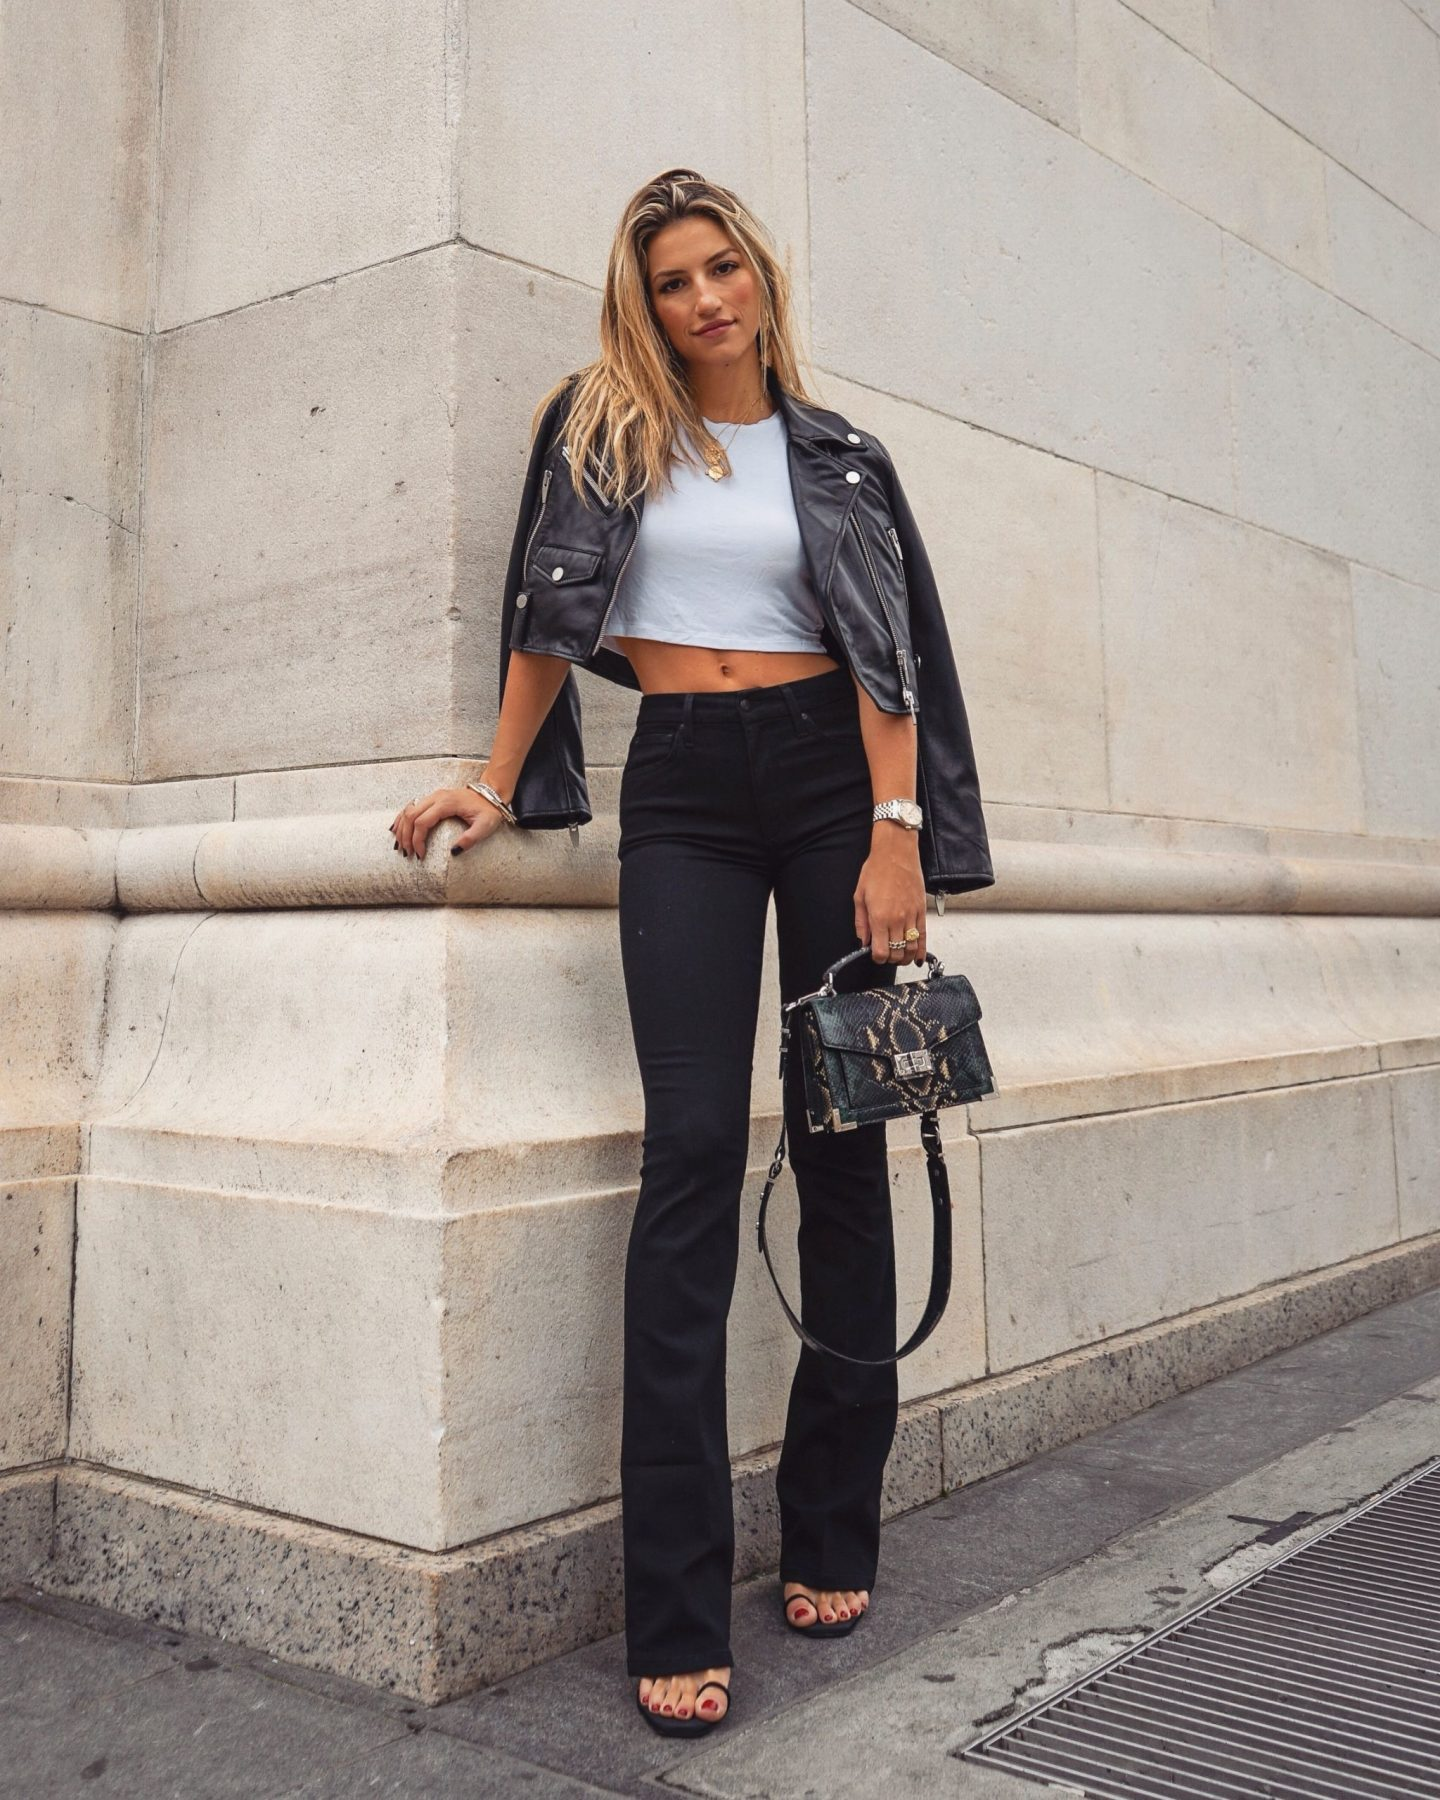 Cassandra DiMicco, Cass DiMicco, Dressed For Dreams, NYC, New York City, New York, Street Style NYC, Street Style 2018, NYC Street Style, NYC Outfit Inspo Street Style Outfits, 2018 Trends, Summer Style, Summer Outfit Inspo, NYC Fashion Blogger, NYC Fashion Blogger, NYC to do list, NYC to do, NYC bucket list, NYC Instagram Spots, joes jeans, Tony Bianco, maje, the kooples, Manhattan, Tony Bianco Sierra sandals, joes jeans the Charlie, plain white tee, maje bummer cropped motorcycle jacket, cropped motorcycle jacket, maje leather jacket, cropped leather jacket, the kooples, the kooples Emily bag, the kooples Emily snakeskin bag